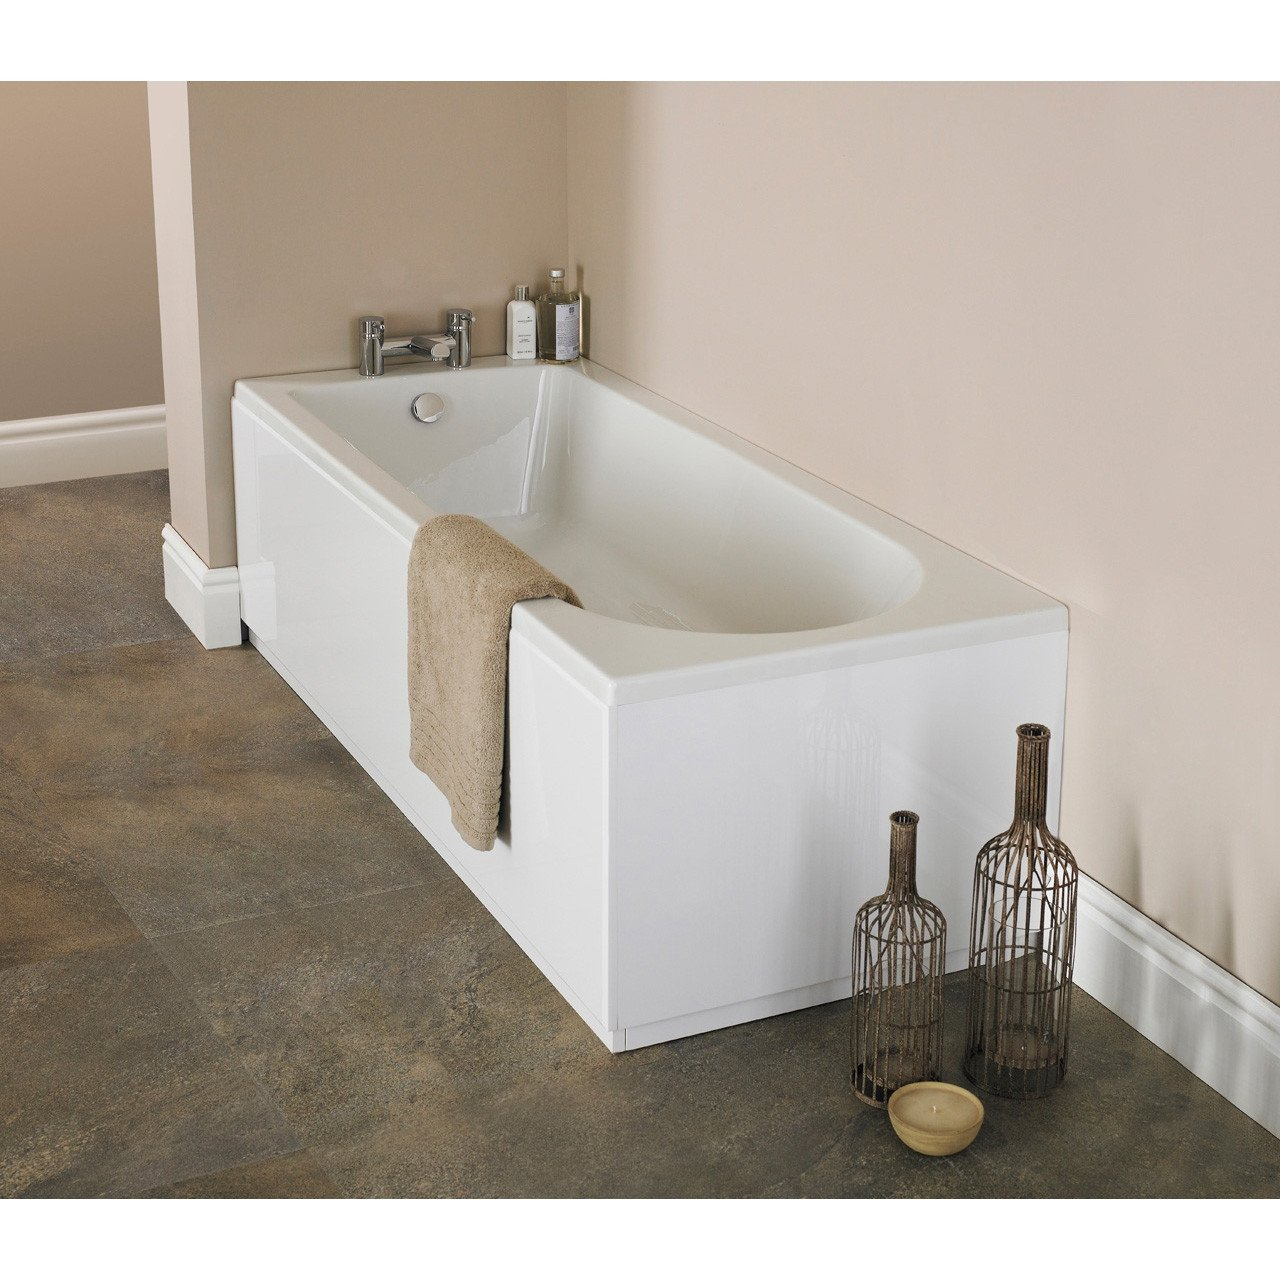 Nuie Barmby 1600mm x 700mm Round Single Ended Bath - NBA607